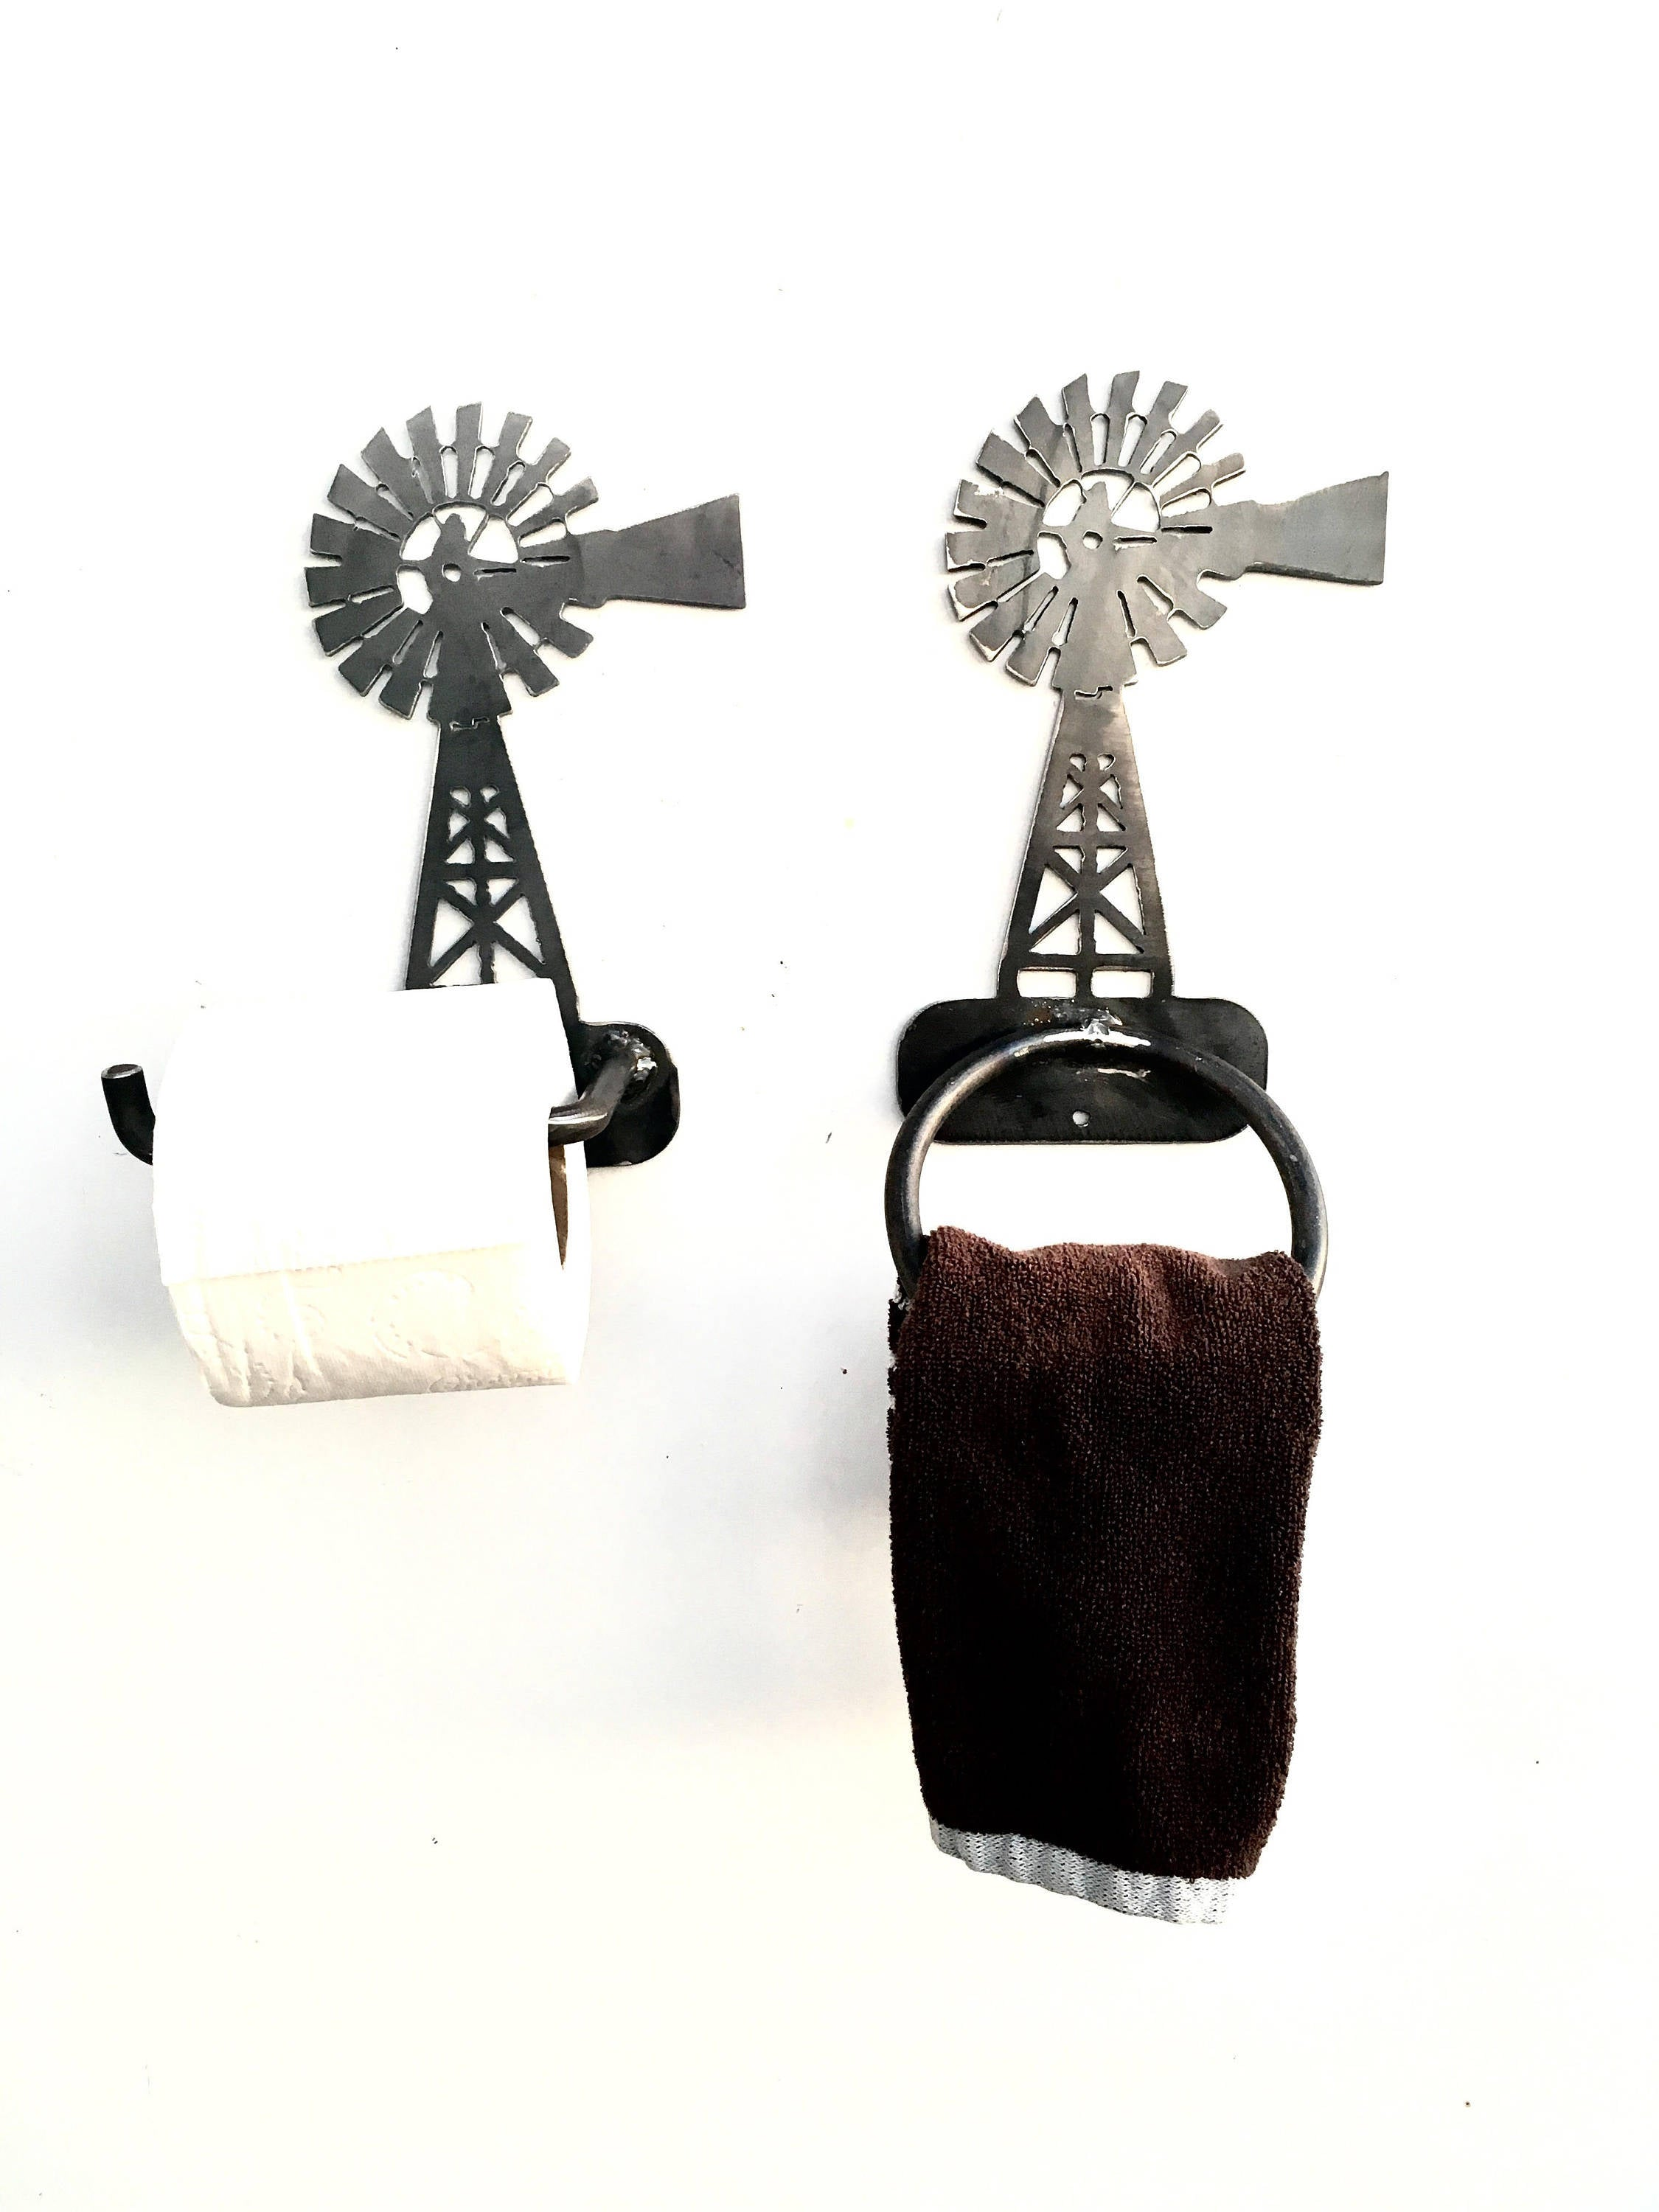 Windmill Toilet Paper Holder